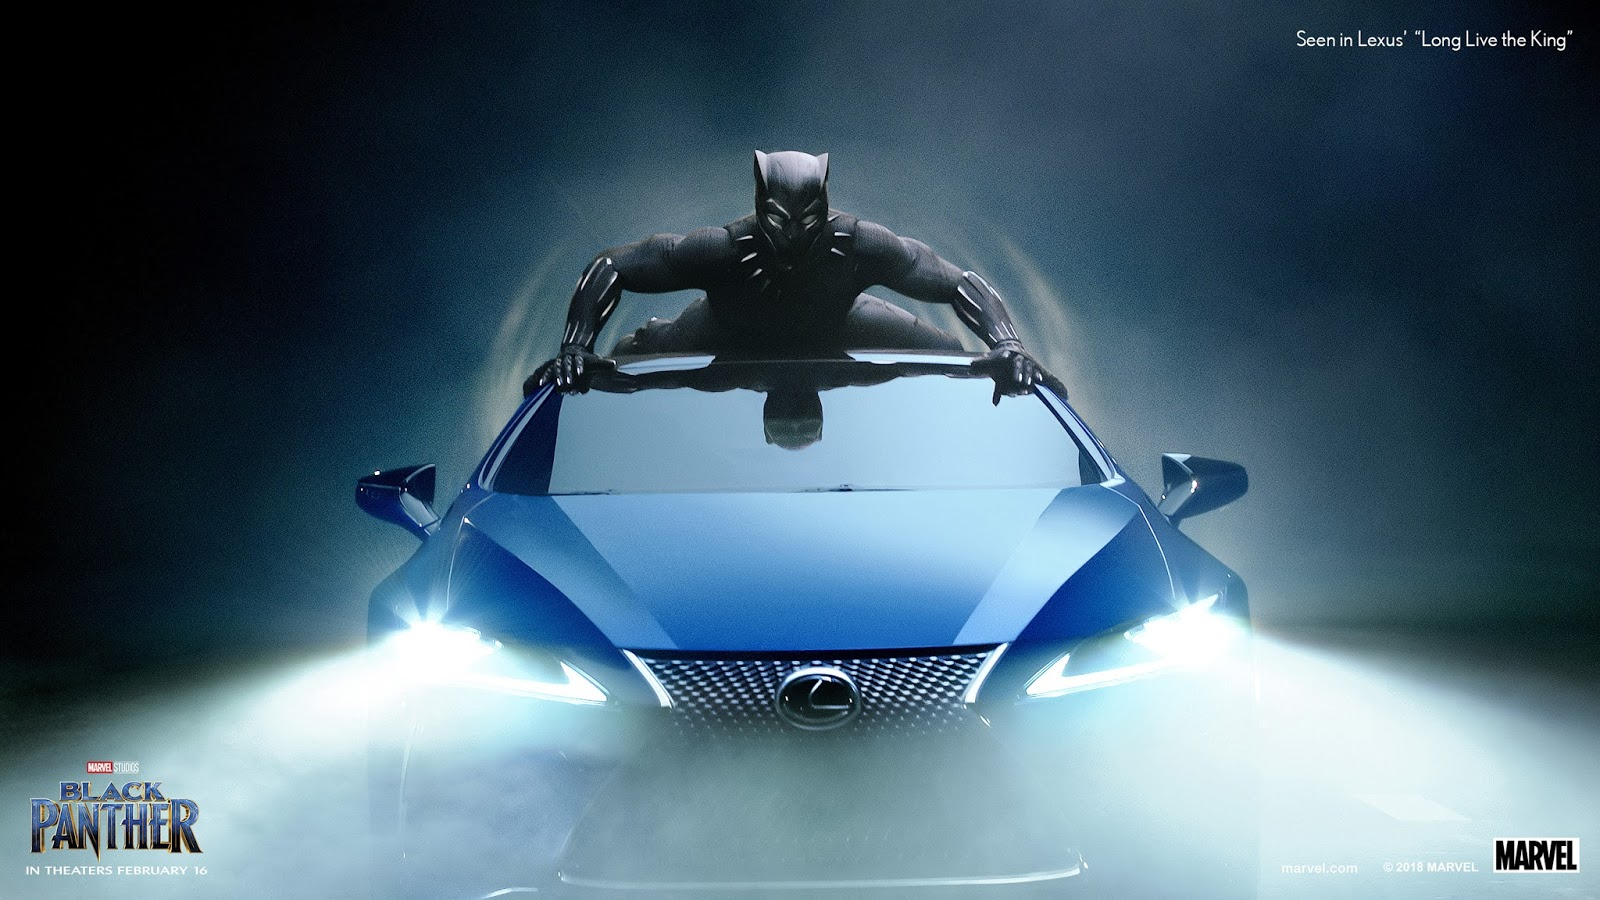 Lexus Uses Marvelu0027s Black Panther For Extended Super Bowl Spot